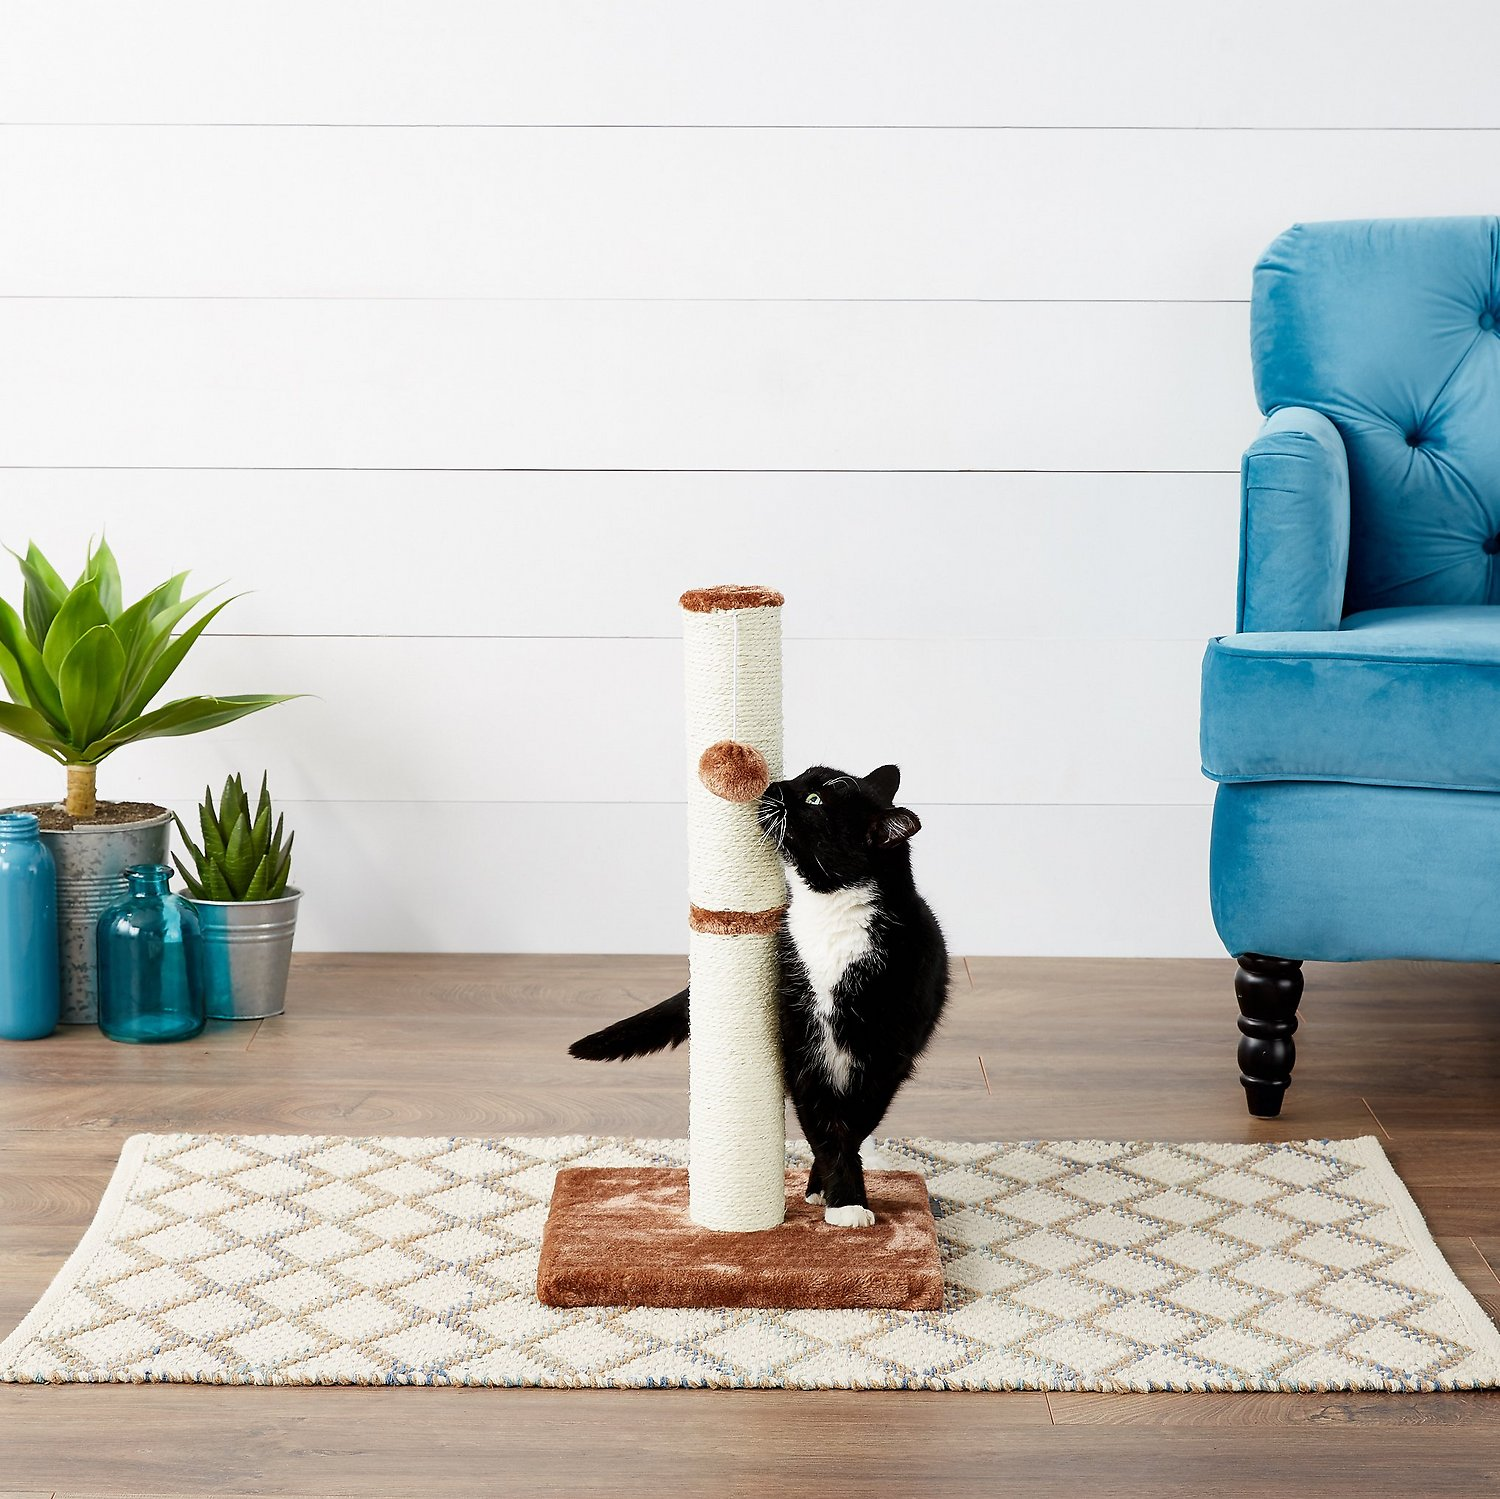 Frisco 21-in Cat Scratching Post with Toy, Brown